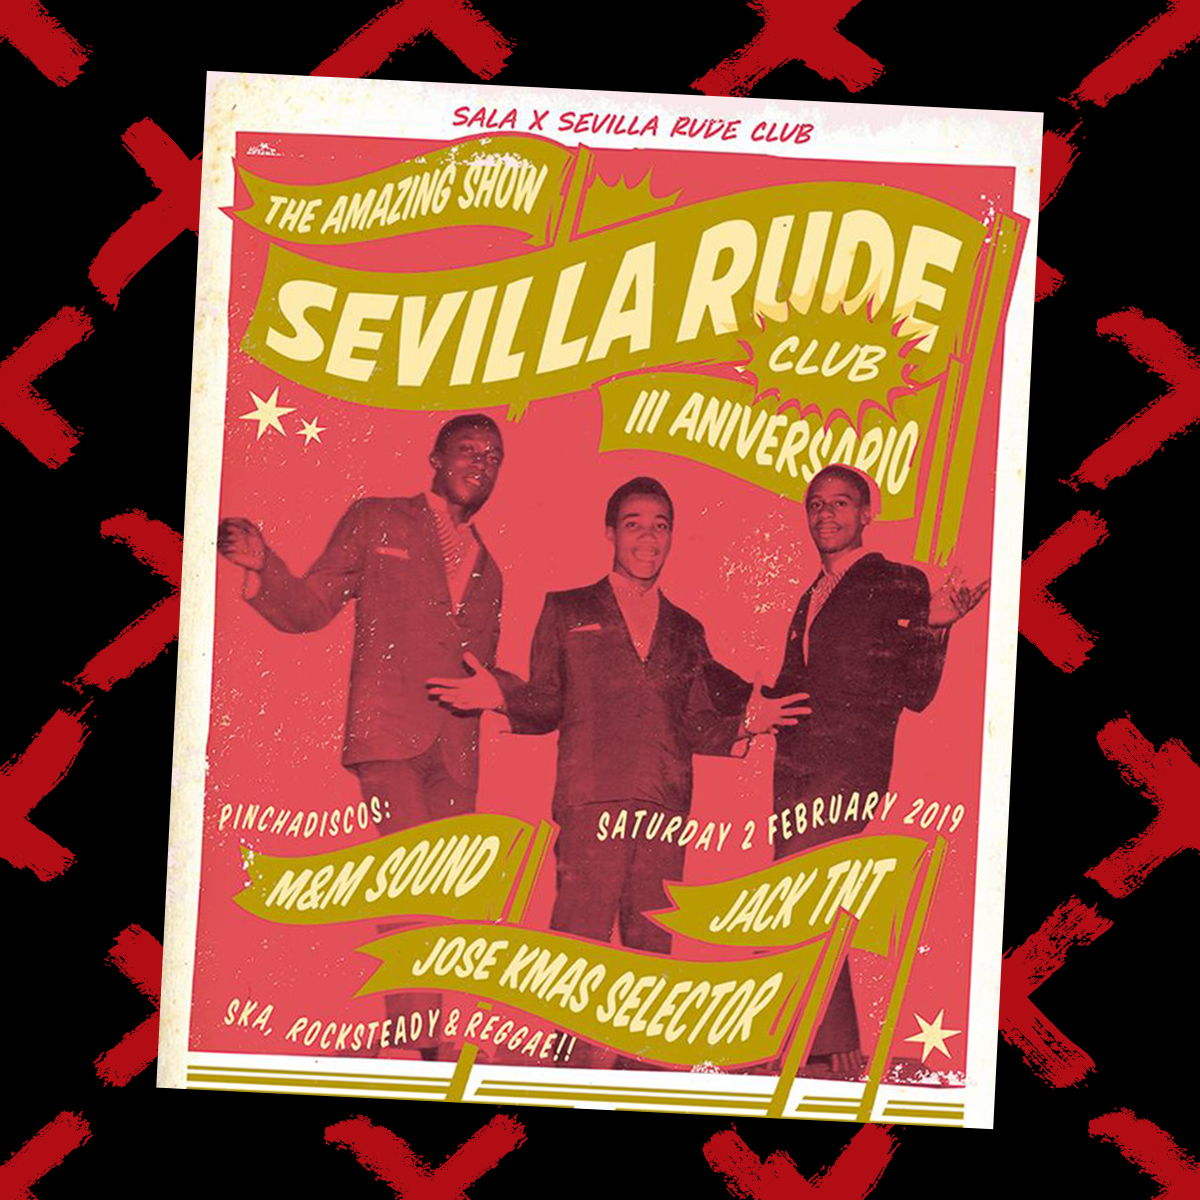 SEVILLA RUDE CLUB FEBRERO INSTAGRAM